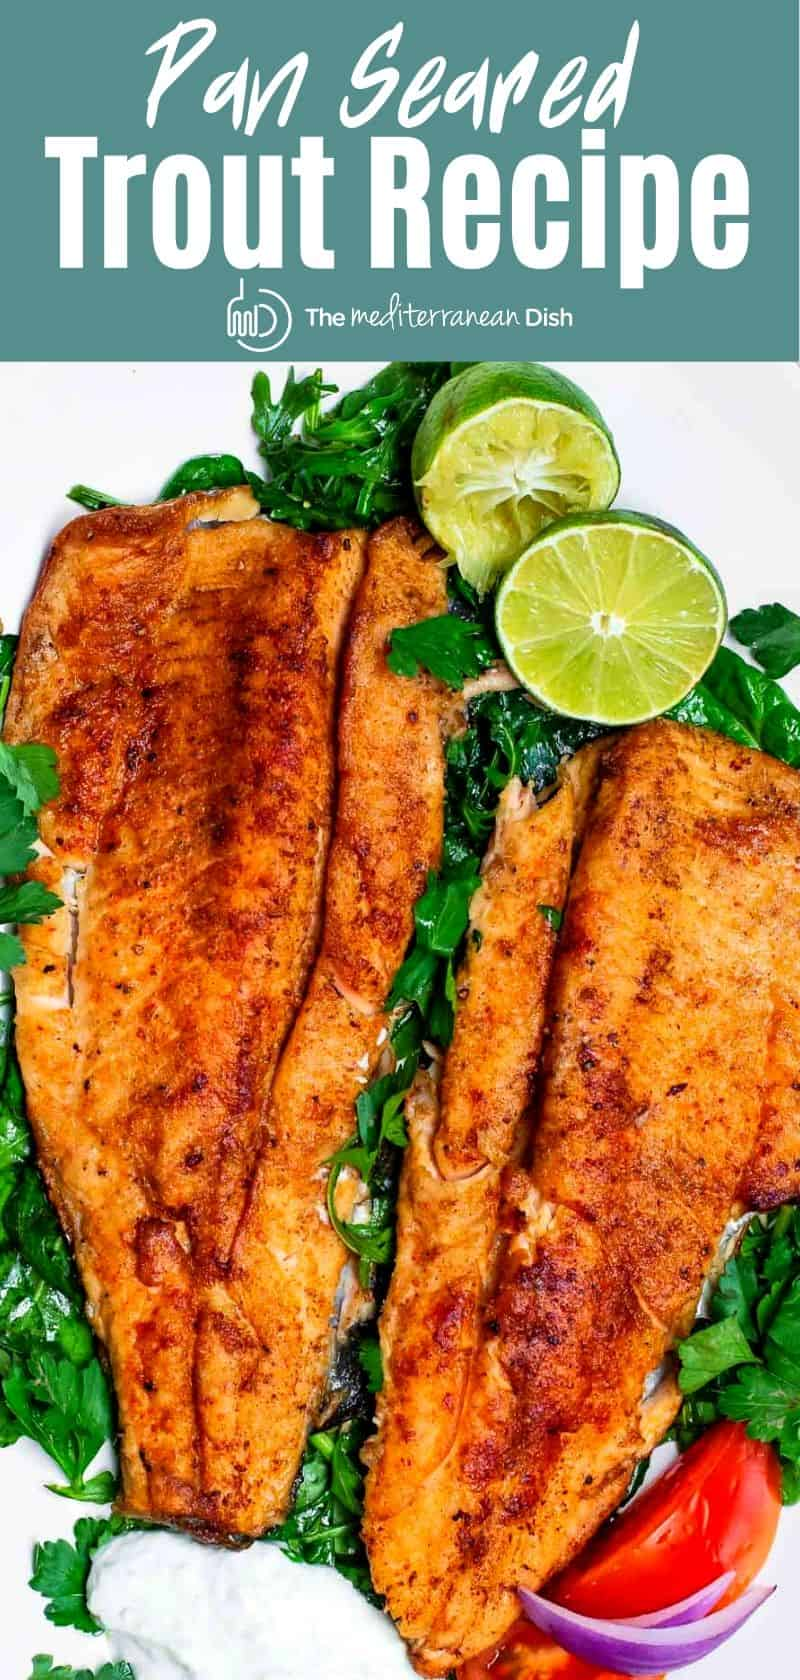 For The Ultimate Fish Fry Try This Easy Flavor Packed Trout Recipe Trout Fillet Coated In A Medite Trout Recipes Fish Dishes Recipes Pan Seared Trout Recipe